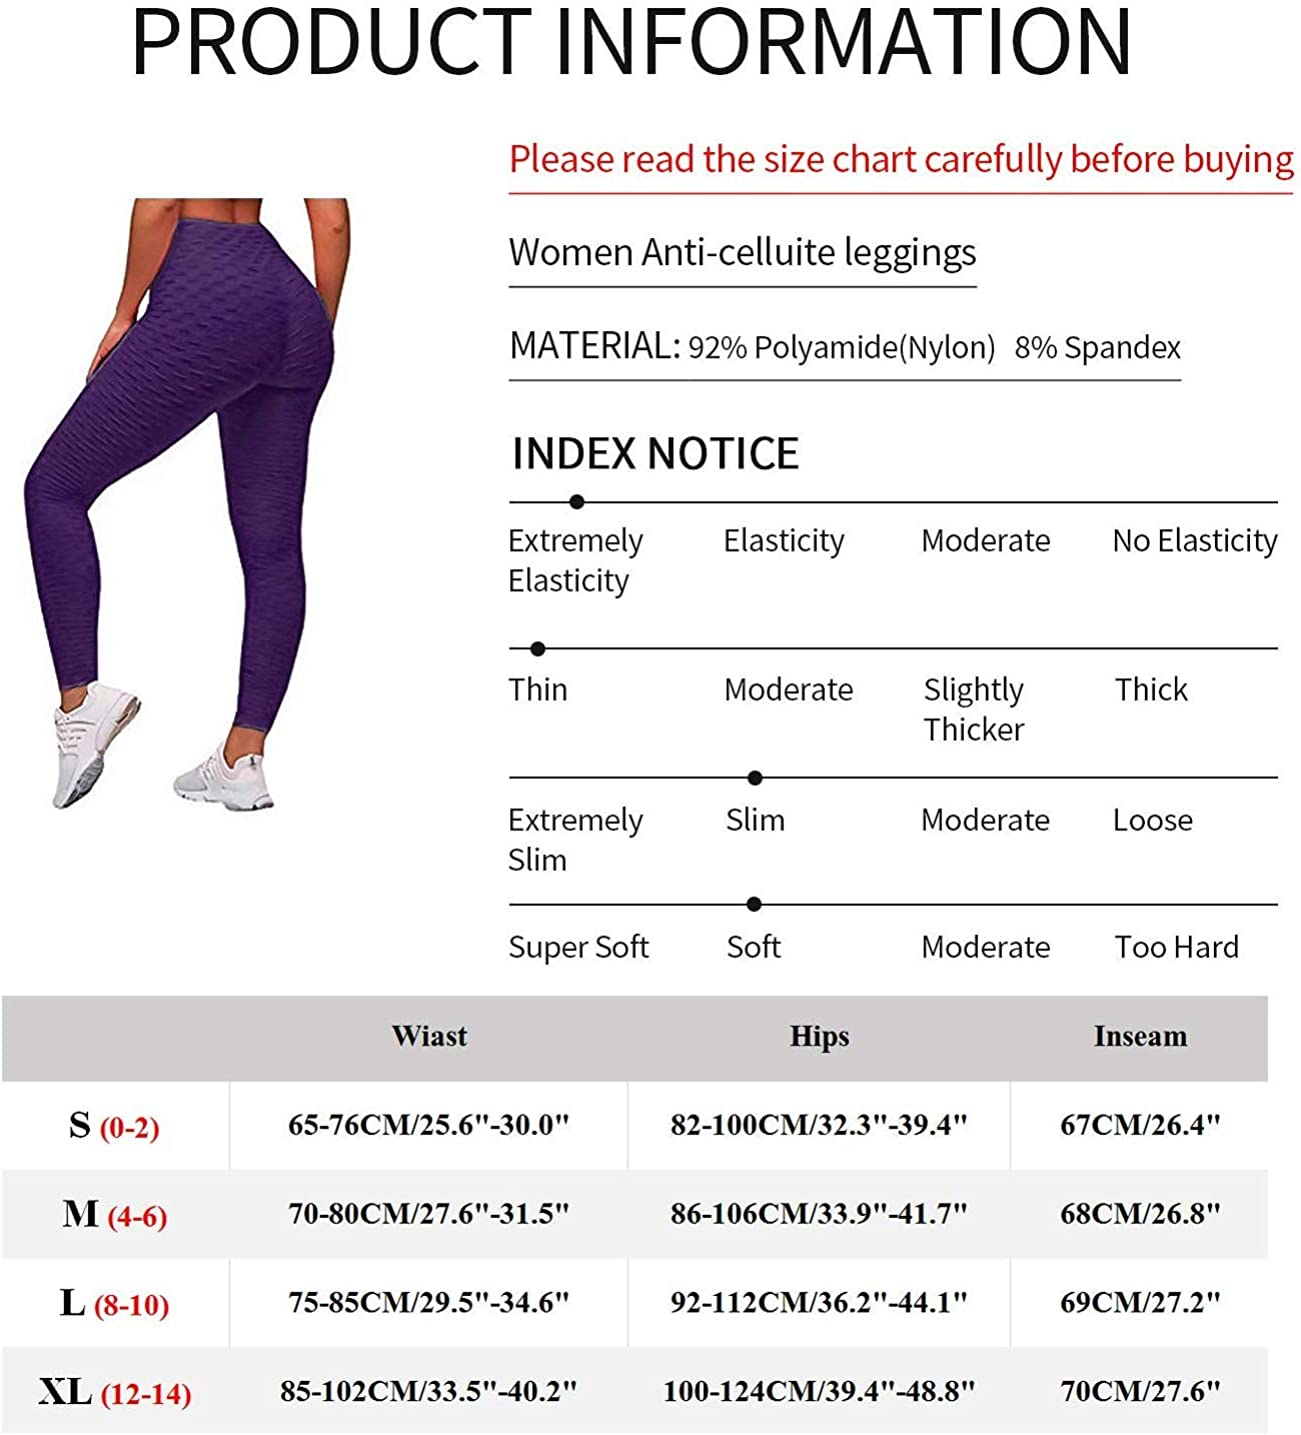 YASION Booty Yoga Pants Women Anti Cellulite Scrunch Ruched Butt Lifting Workout Leggings Textured Slimming Tights